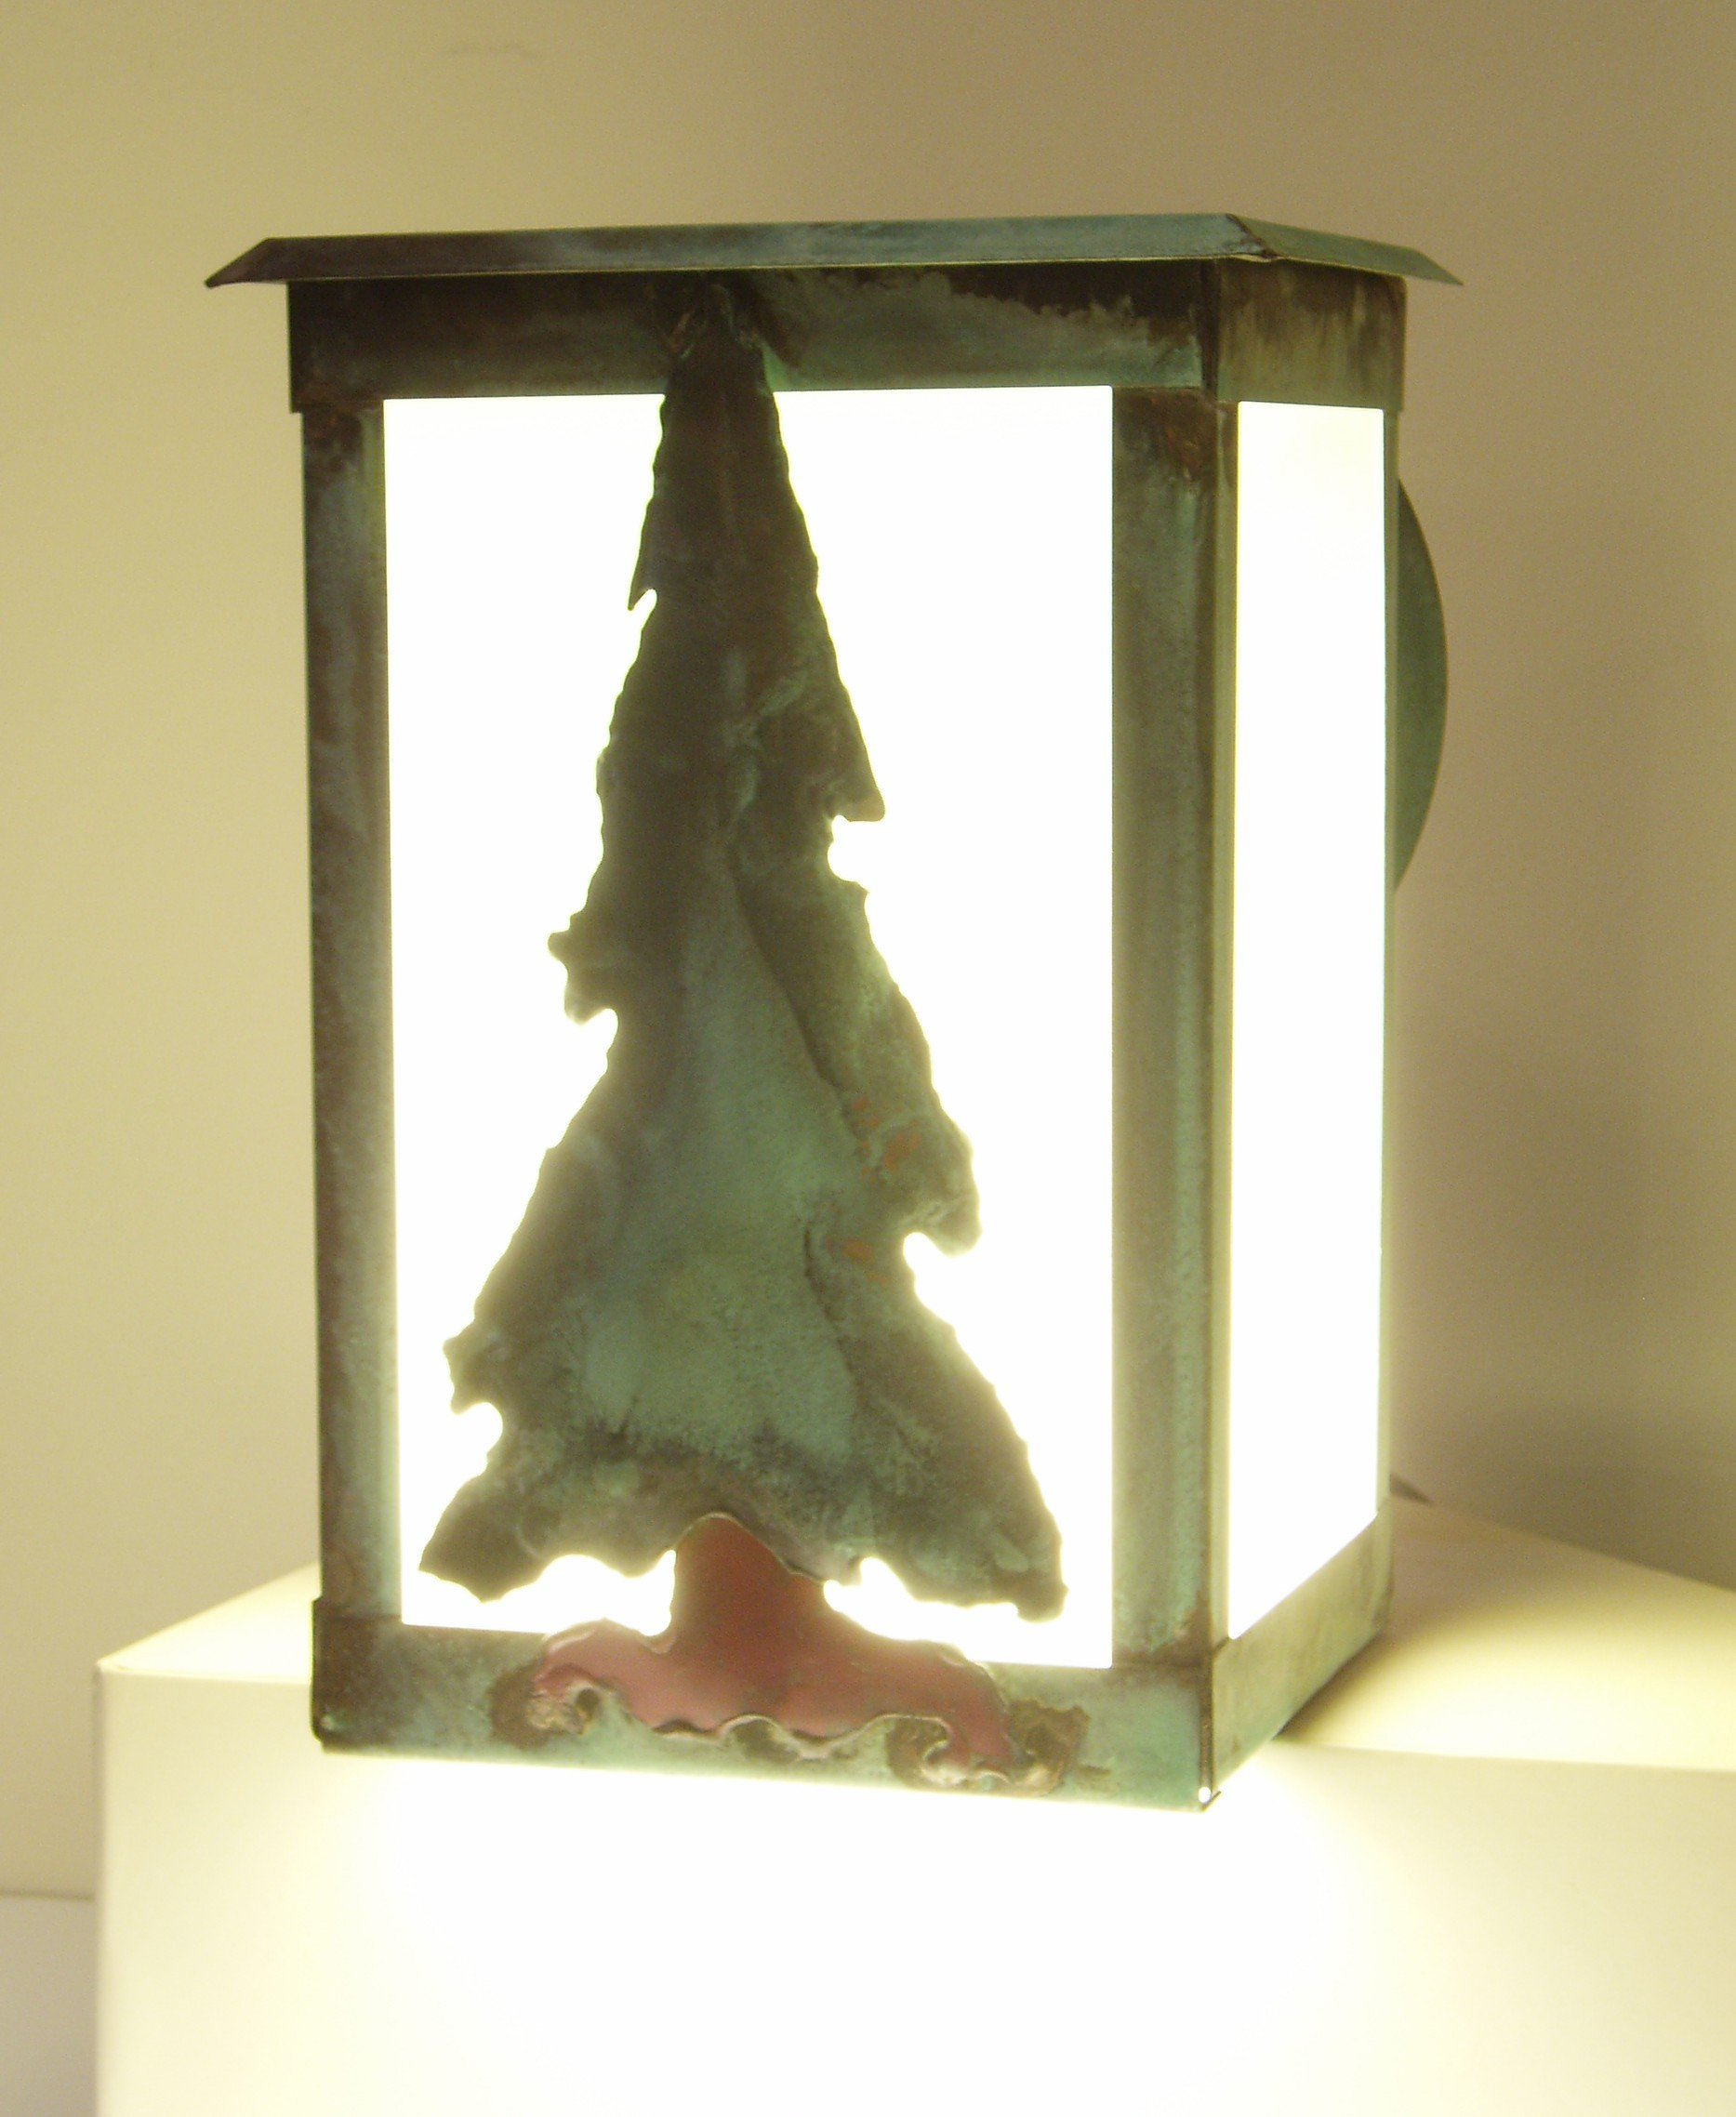 Tree lantern made in USA, solid copper